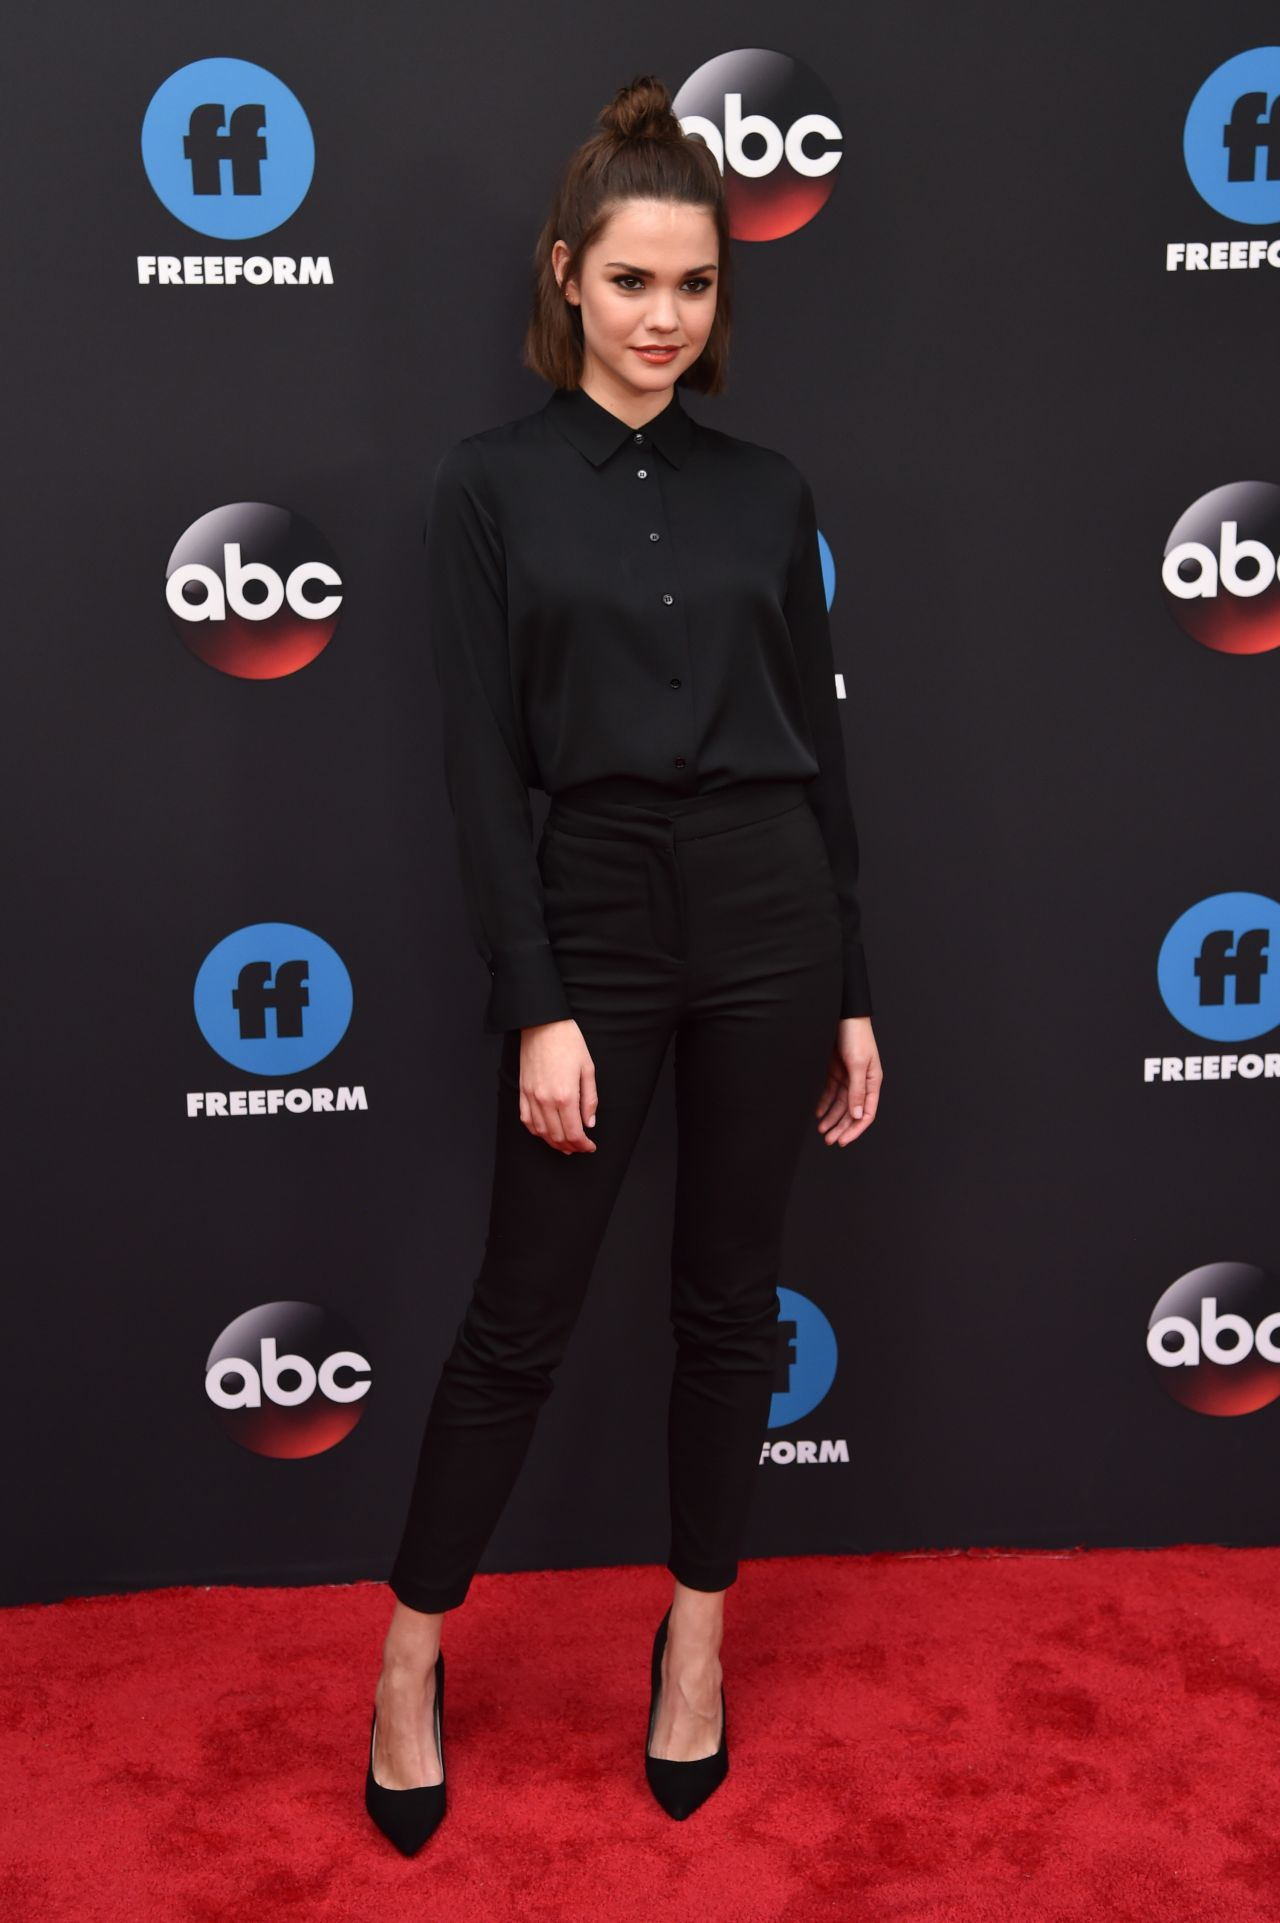 http://celebmafia.com/wp-content/uploads/2018/05/maia-mitchell-2018-disney-abc-upfront-presentation-in-new-york-1.jpg